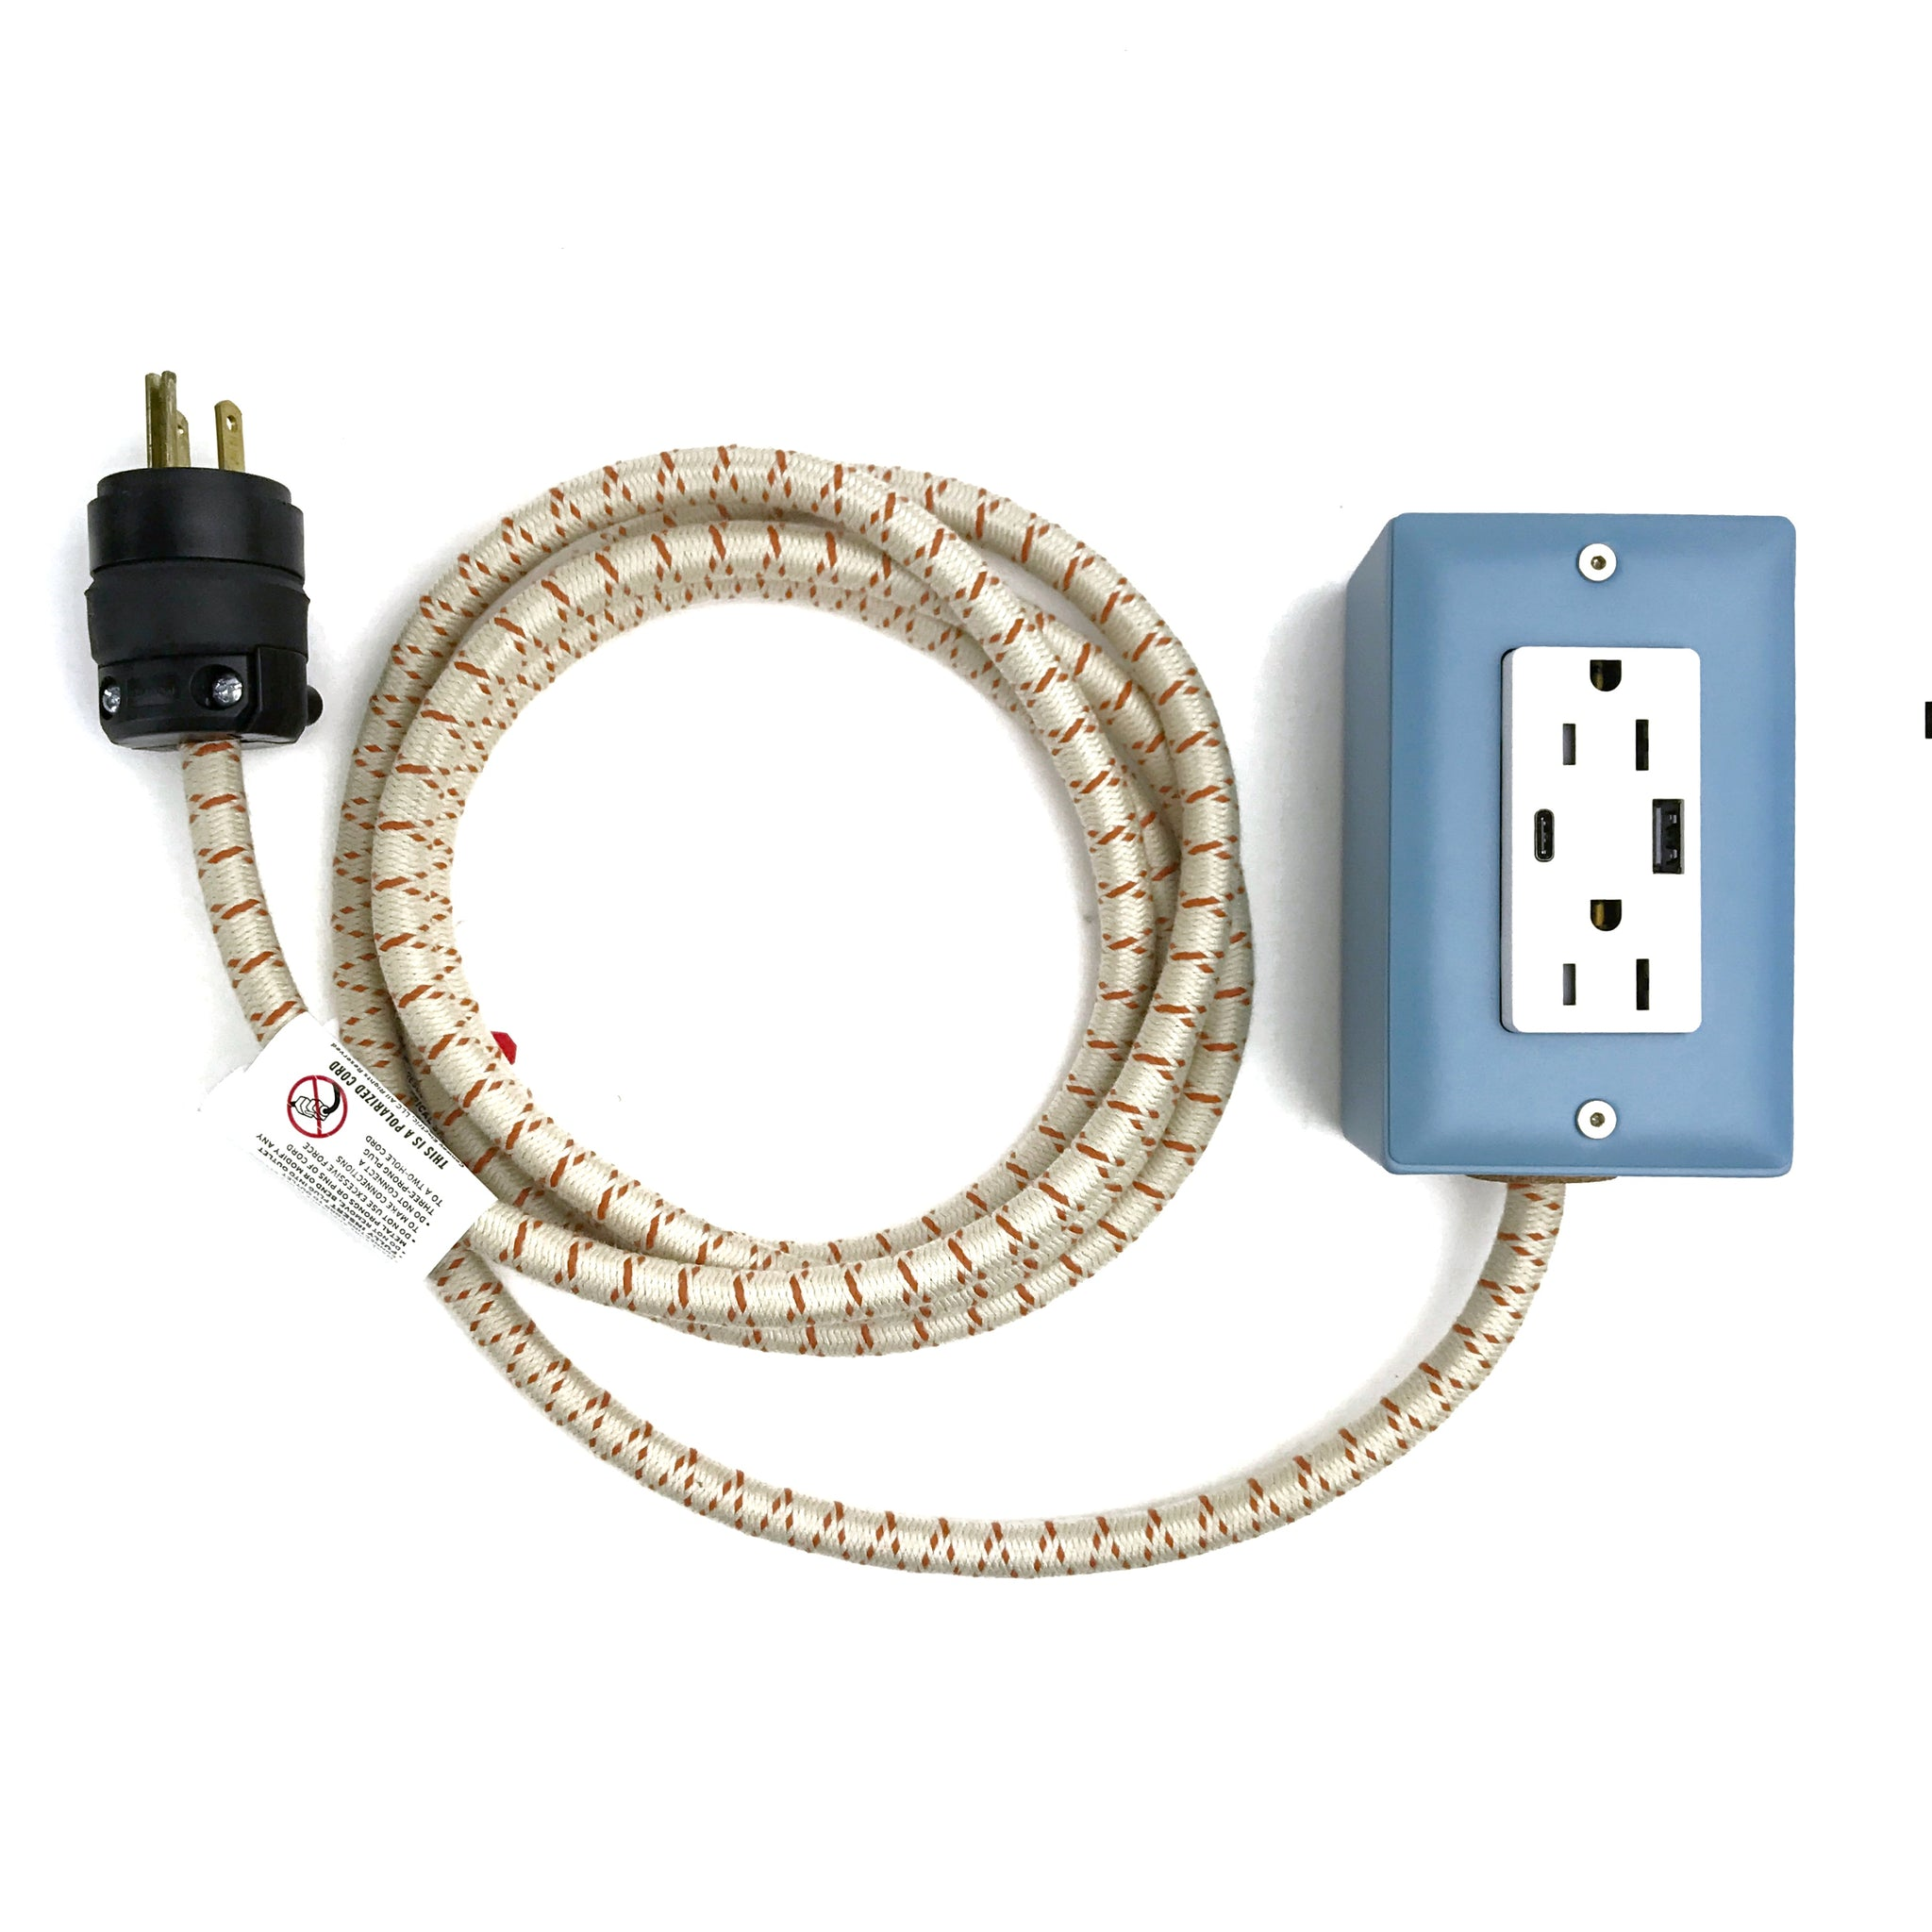 New! The First Smart Chip USB Type C® Extension Cord - 8' Extō Dual USB Port, Dual-Outlet Power Cord